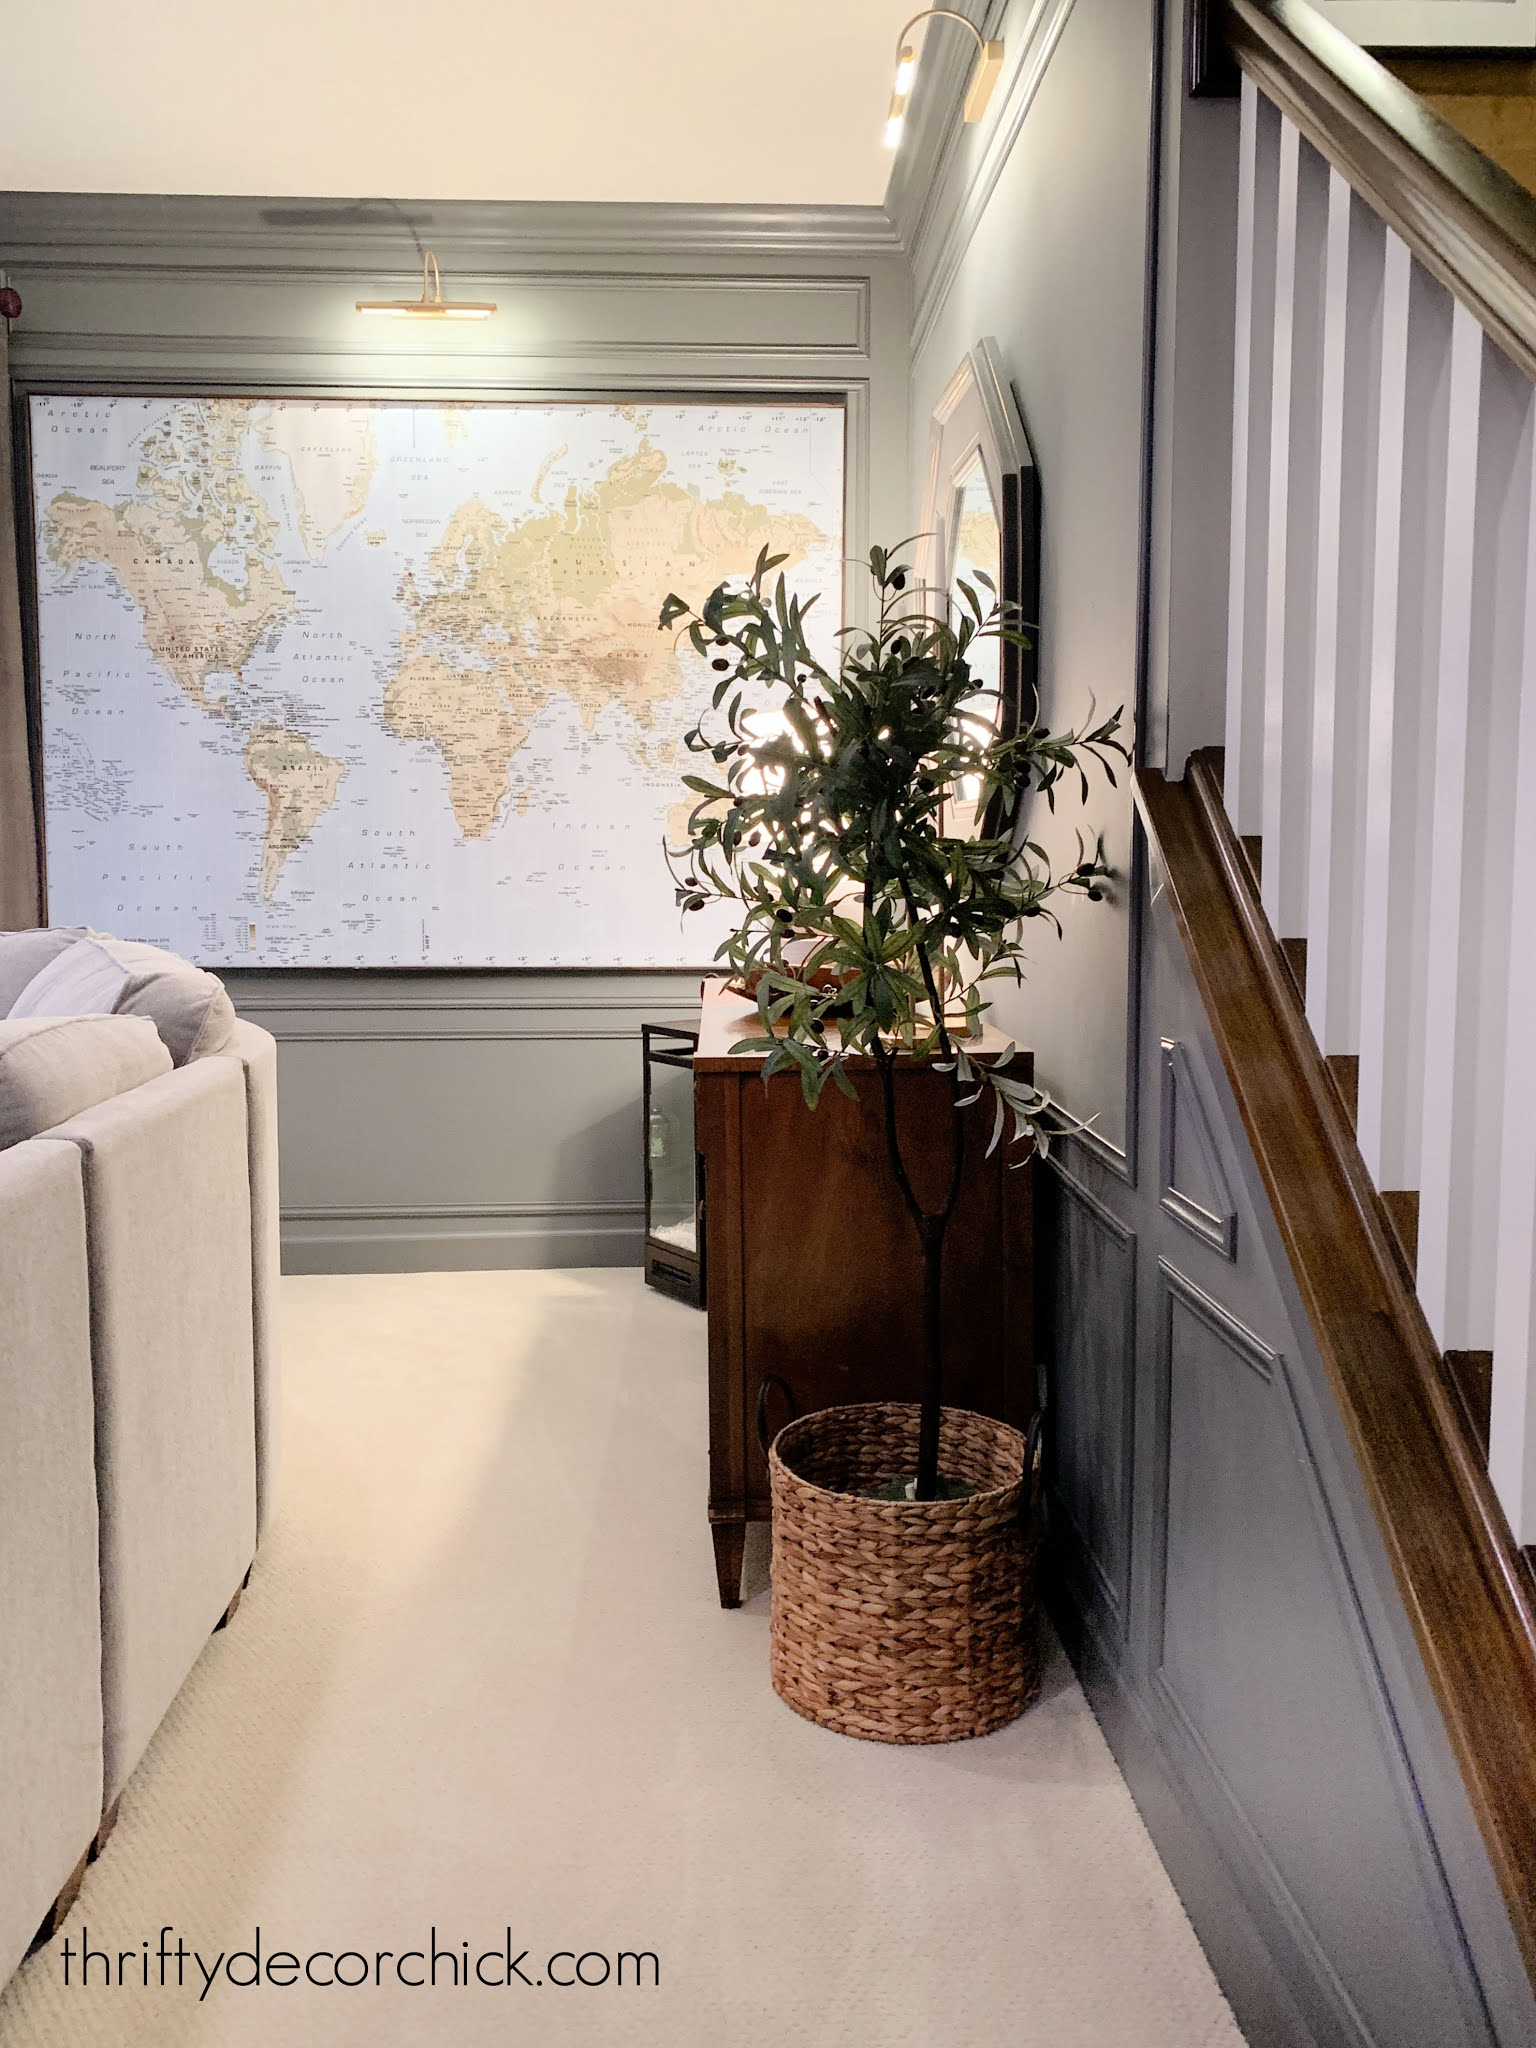 box trim on walls with large map